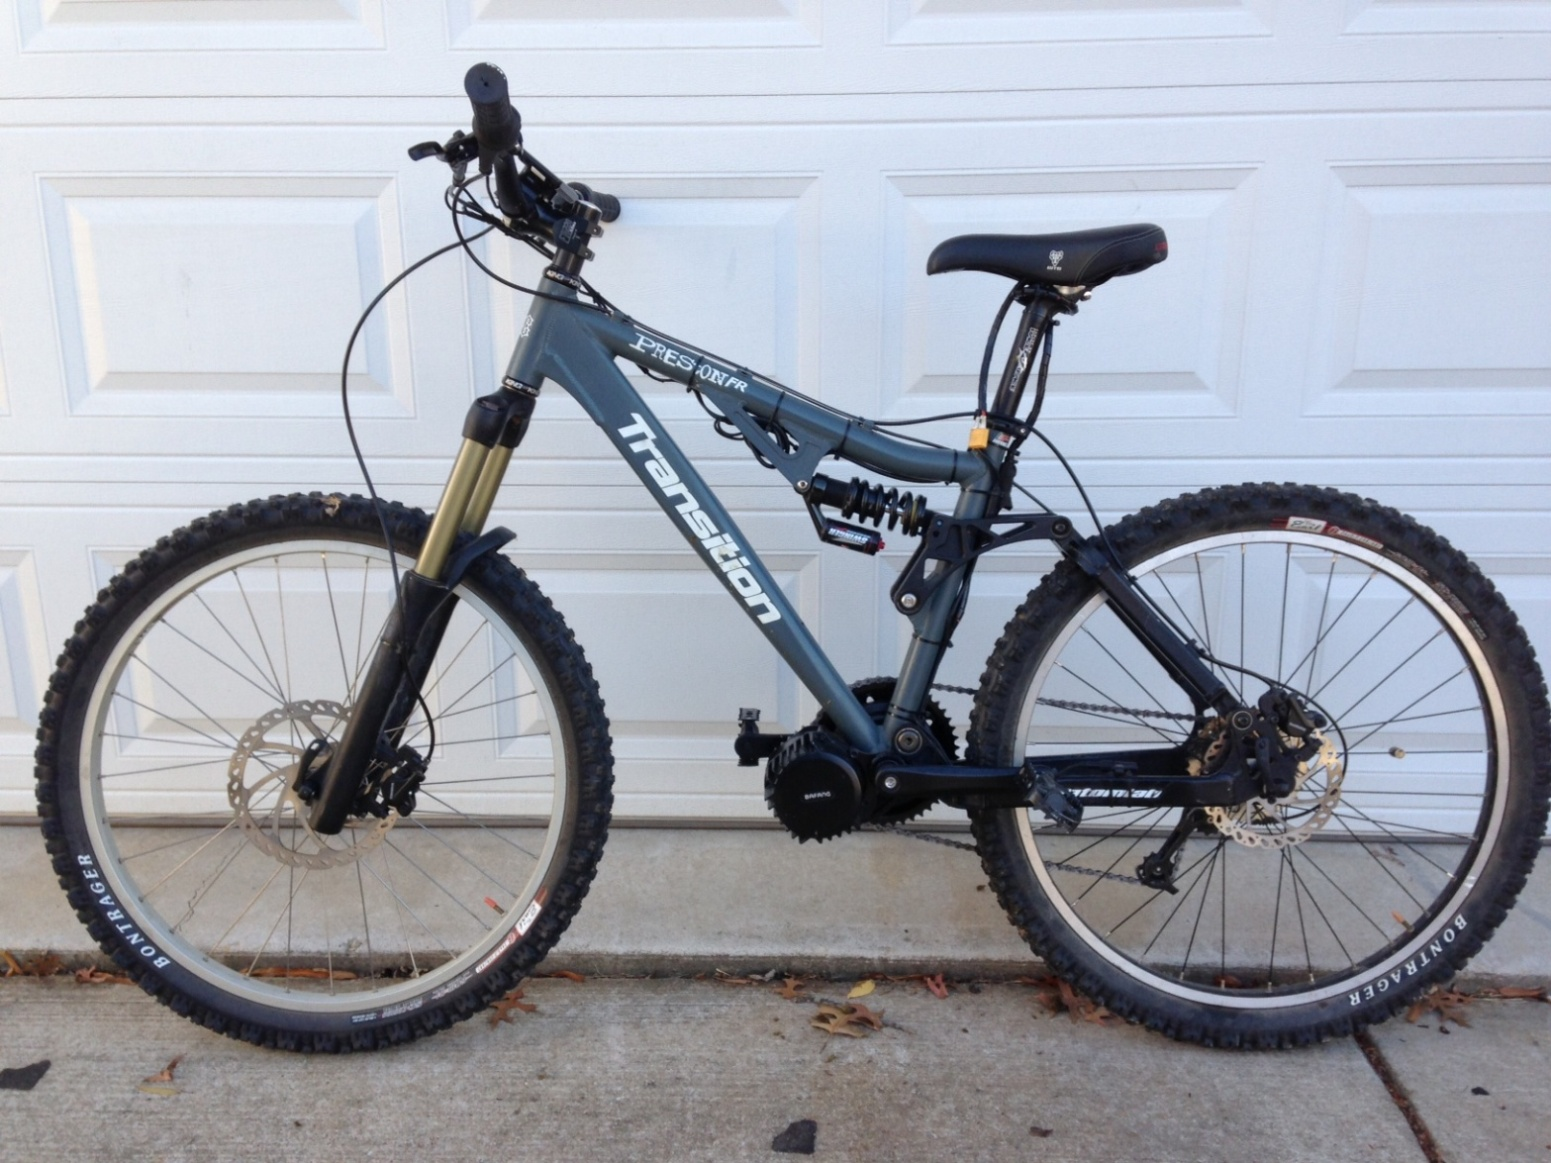 18 Reasons To Build A Diy Ebike